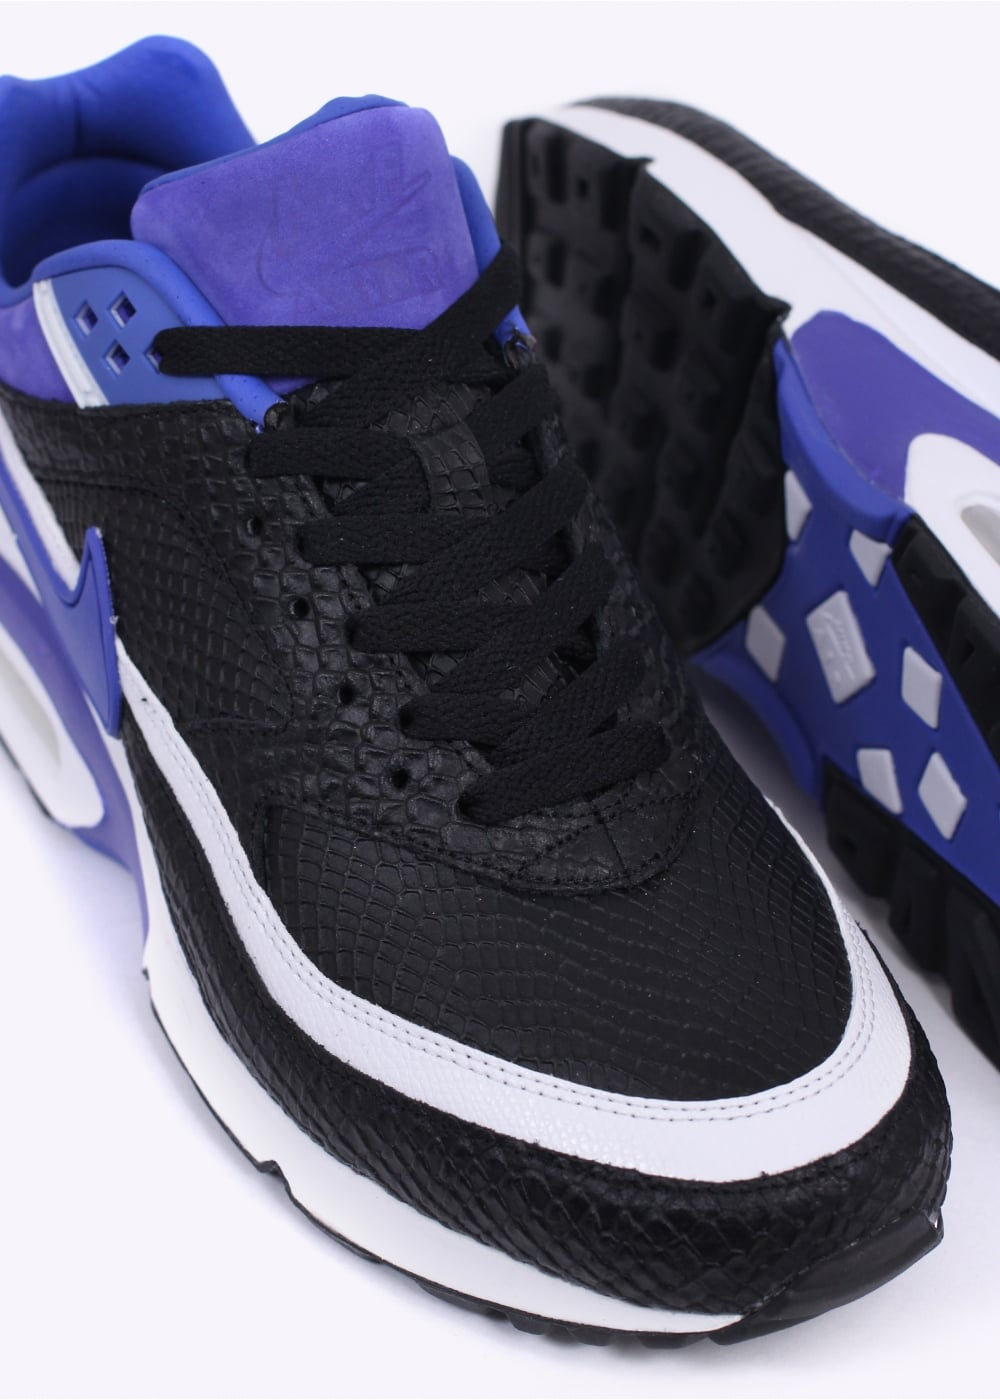 Nike Air Max BW Ultra SE Persian Violet | Sole Collector